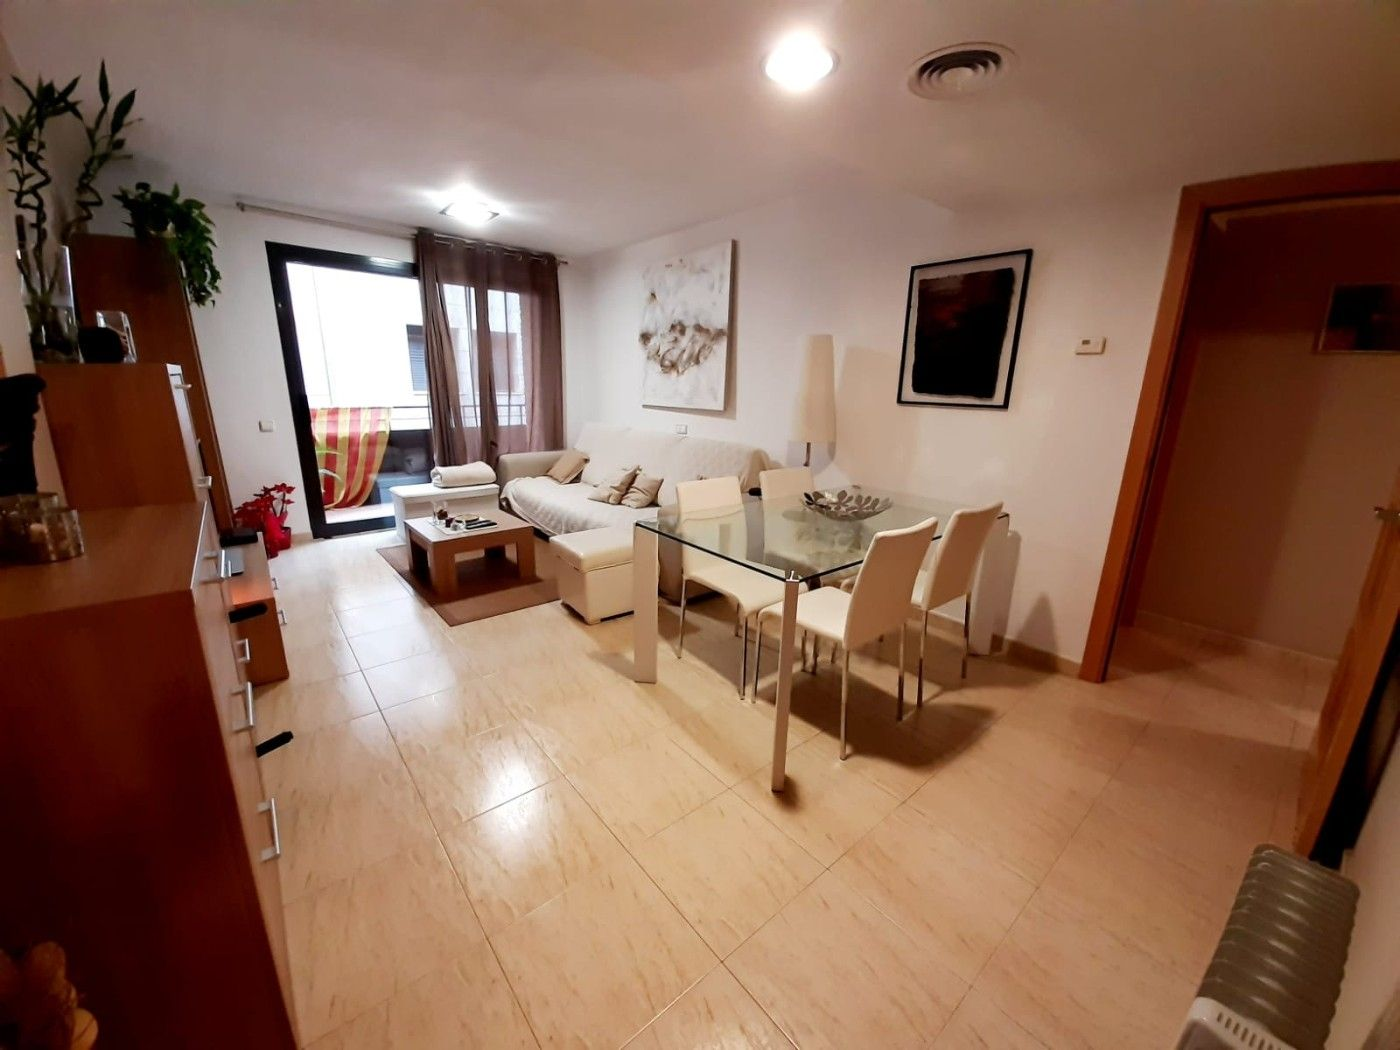 Location Appartement  Carrer espanya. Incluye parking y trastero